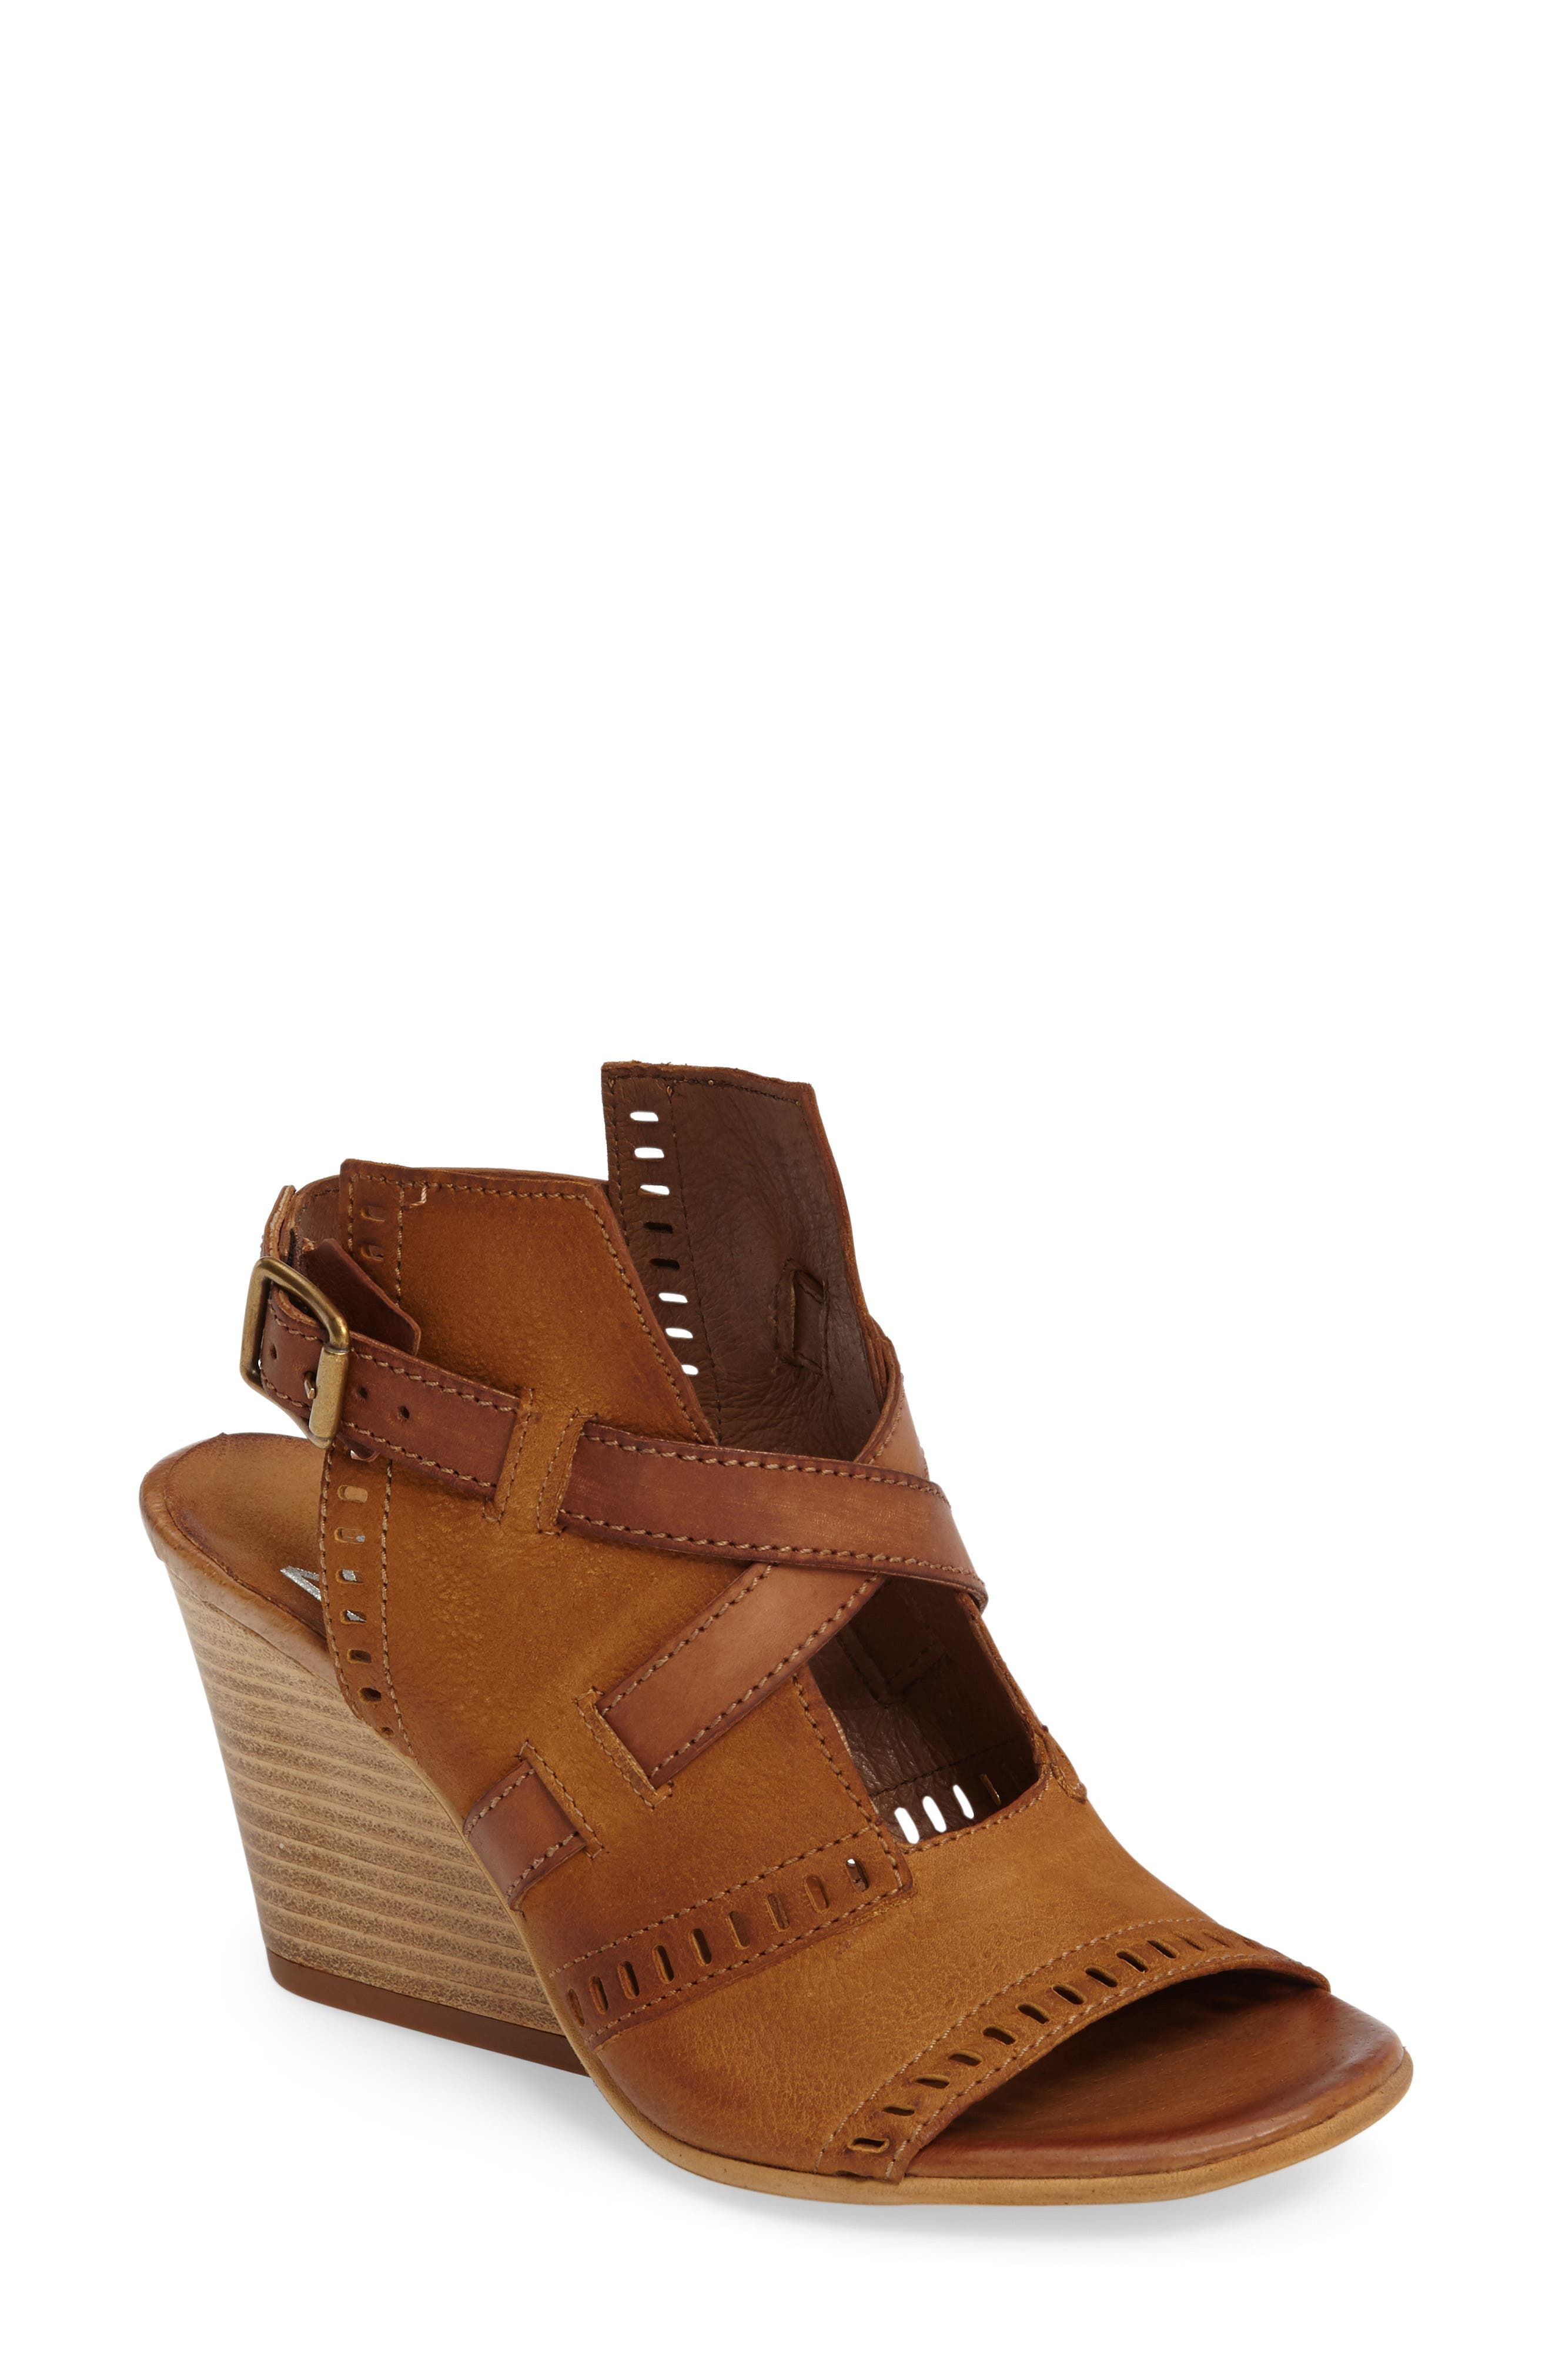 Main Image - Miz Mooz Kipling Perforated Sandal (Women)